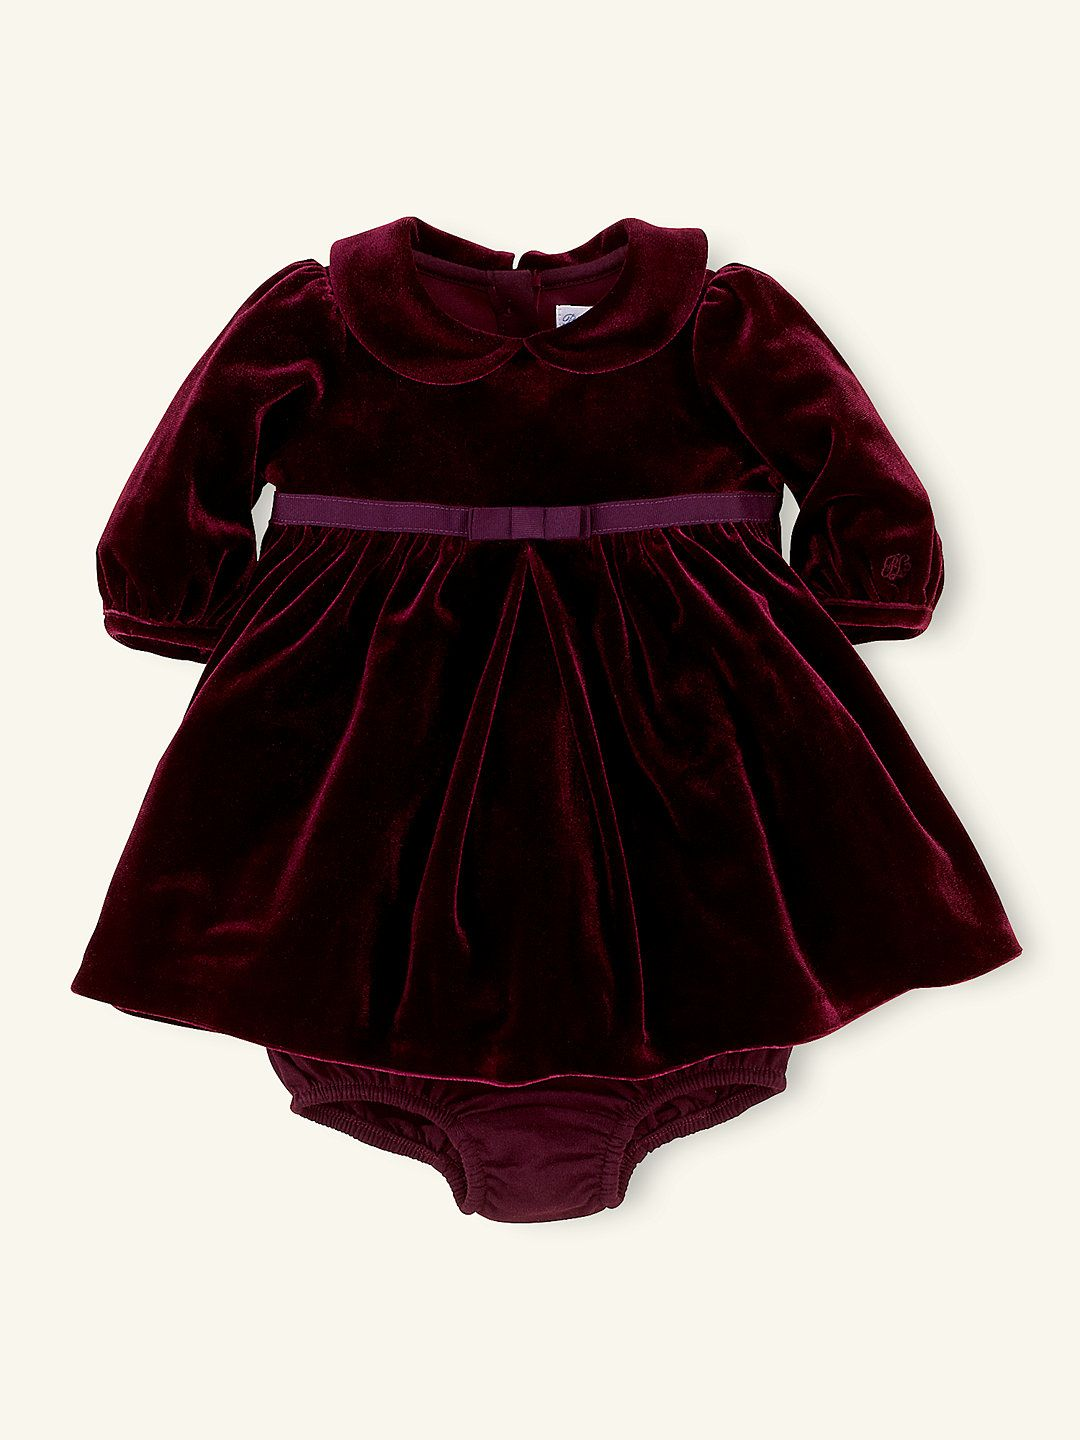 5a6173f5121 Long-Sleeved Velvet Dress - Dresses   Rompers Layette Girl (Newborn–9M) -  RalphLauren.com